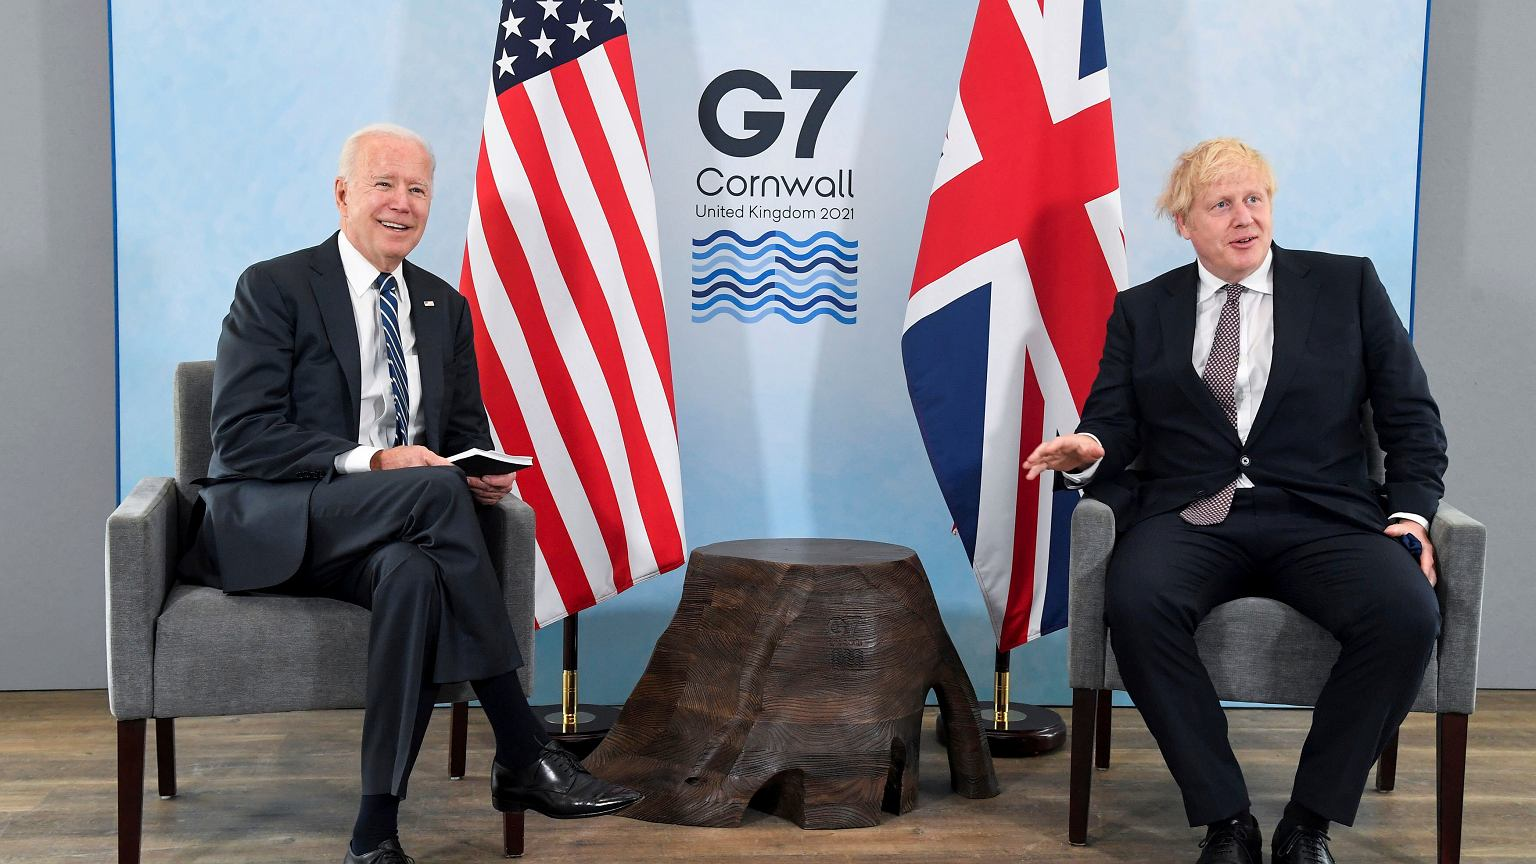 The G7 countries have agreed to tax giant digital companies